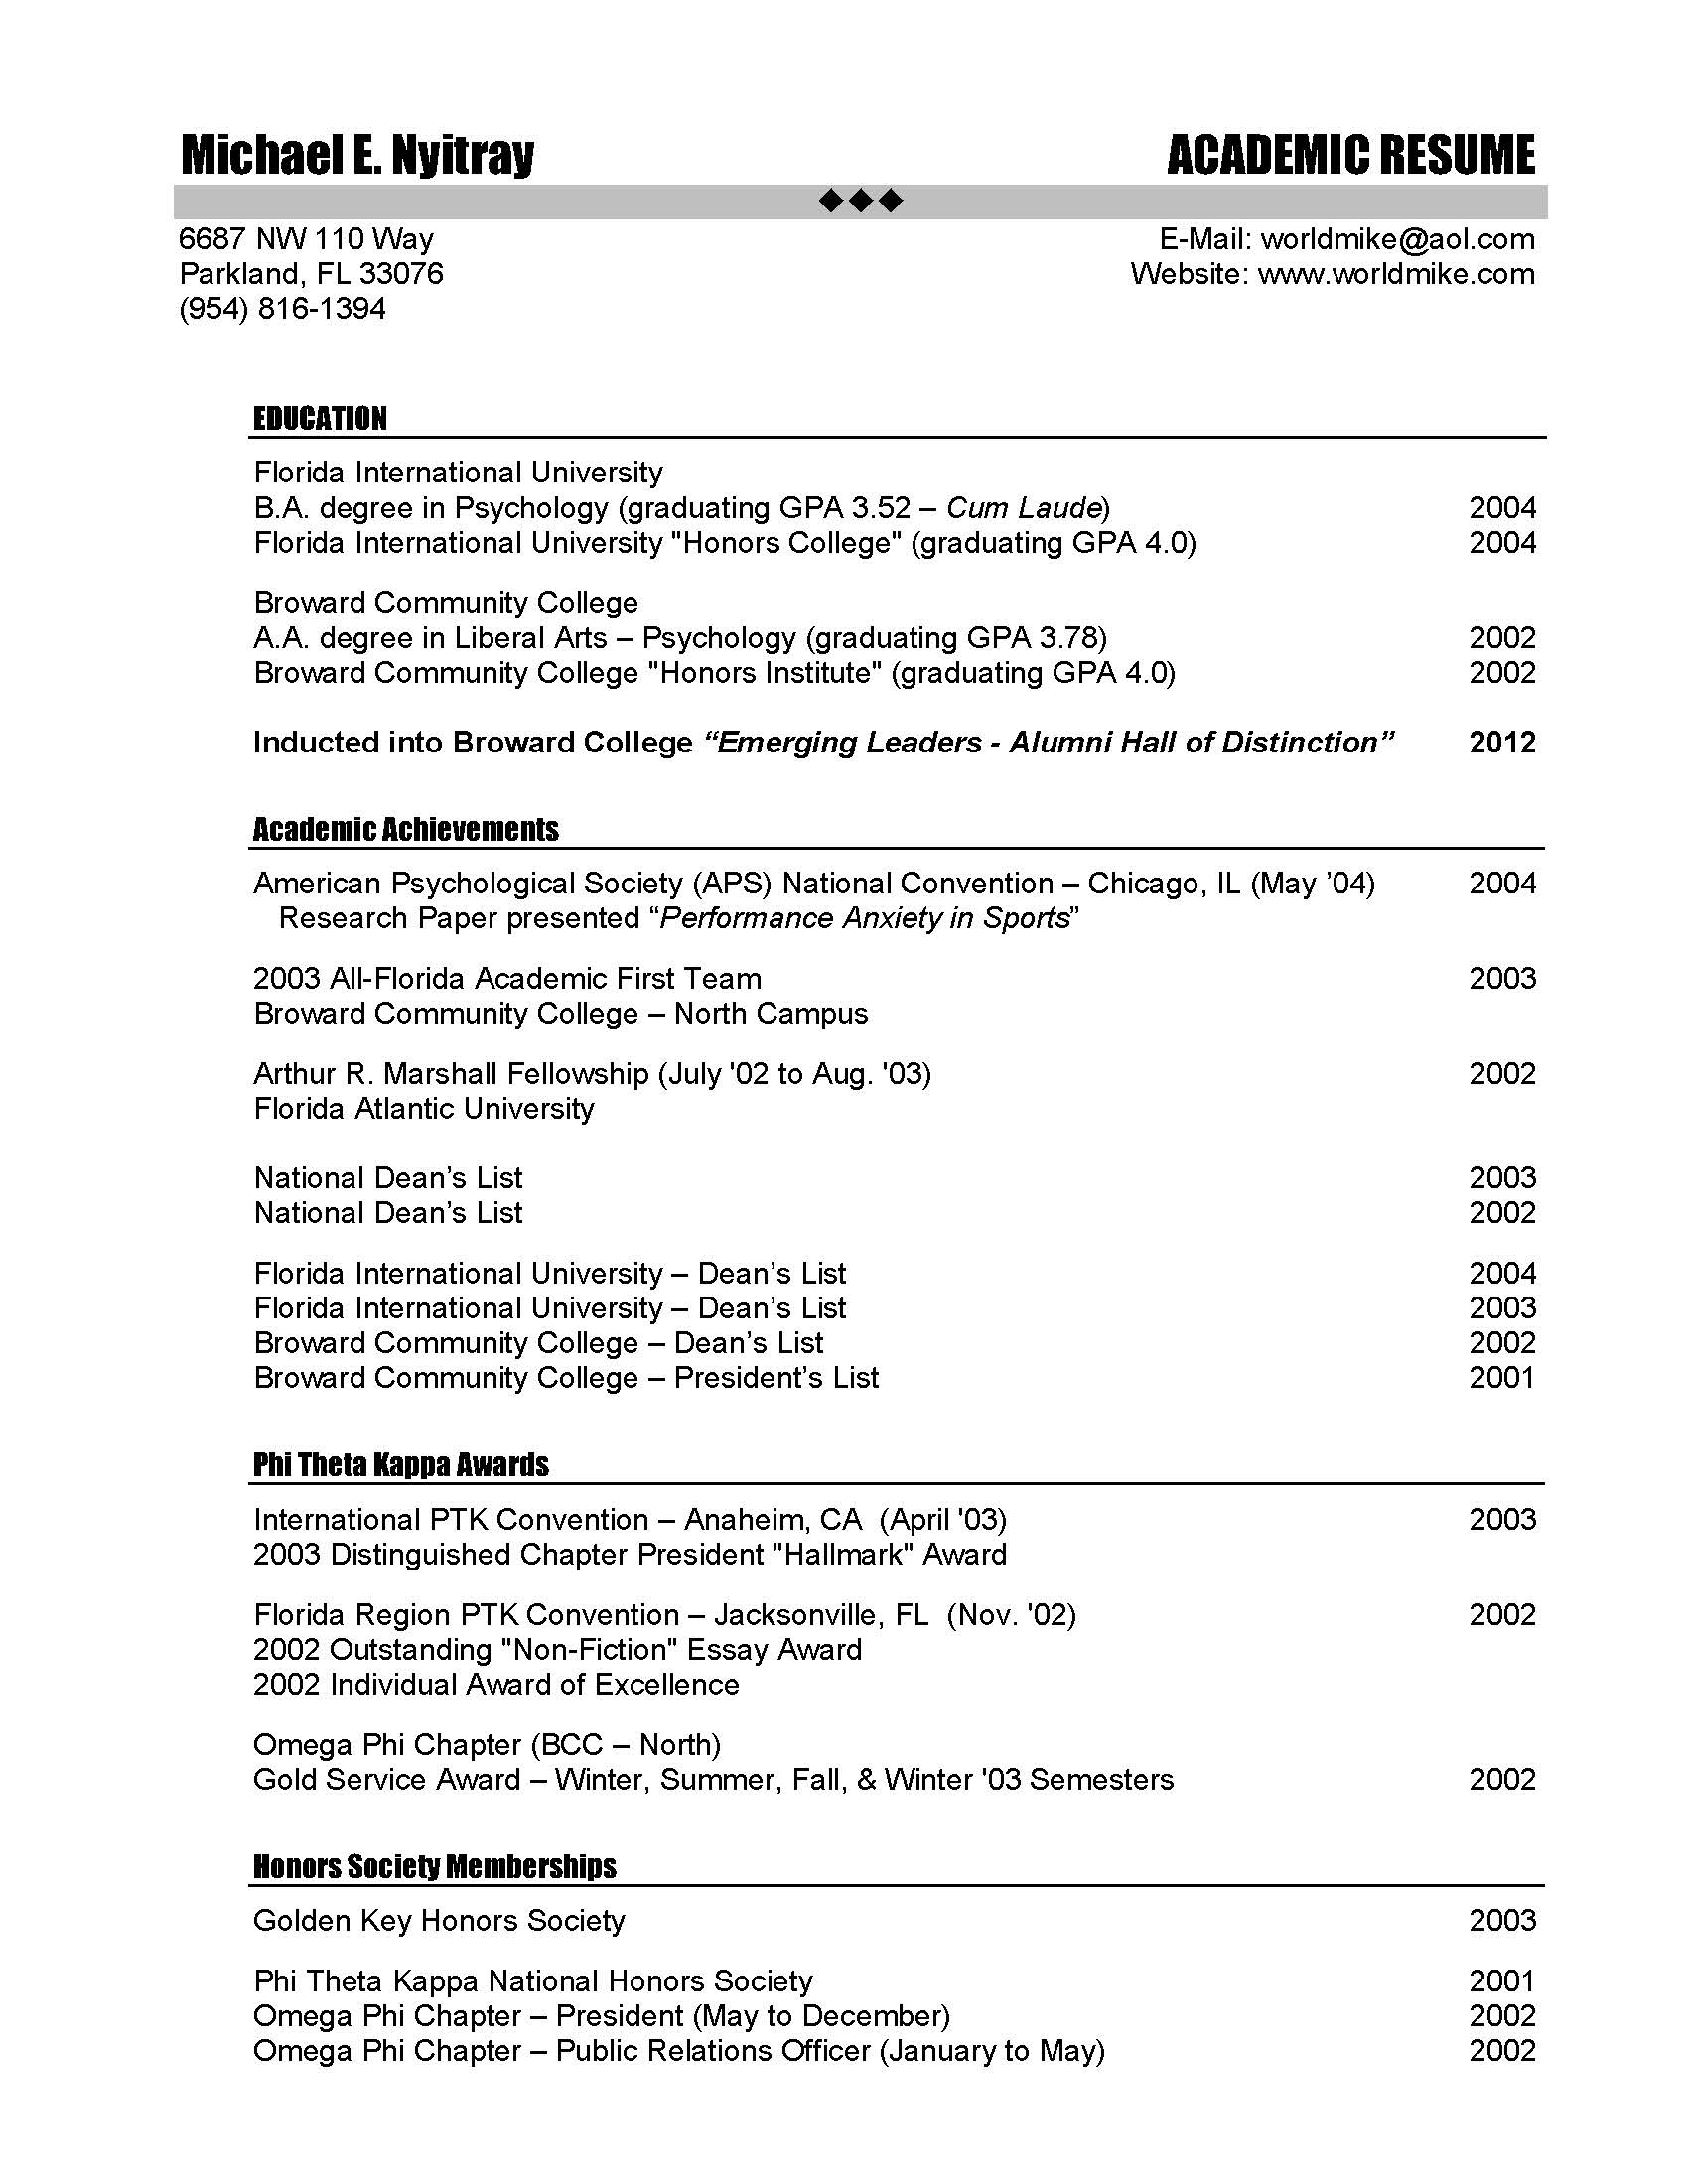 Academic Resume Template For College | Academic Resume Builder Opucuk Kiessling Co